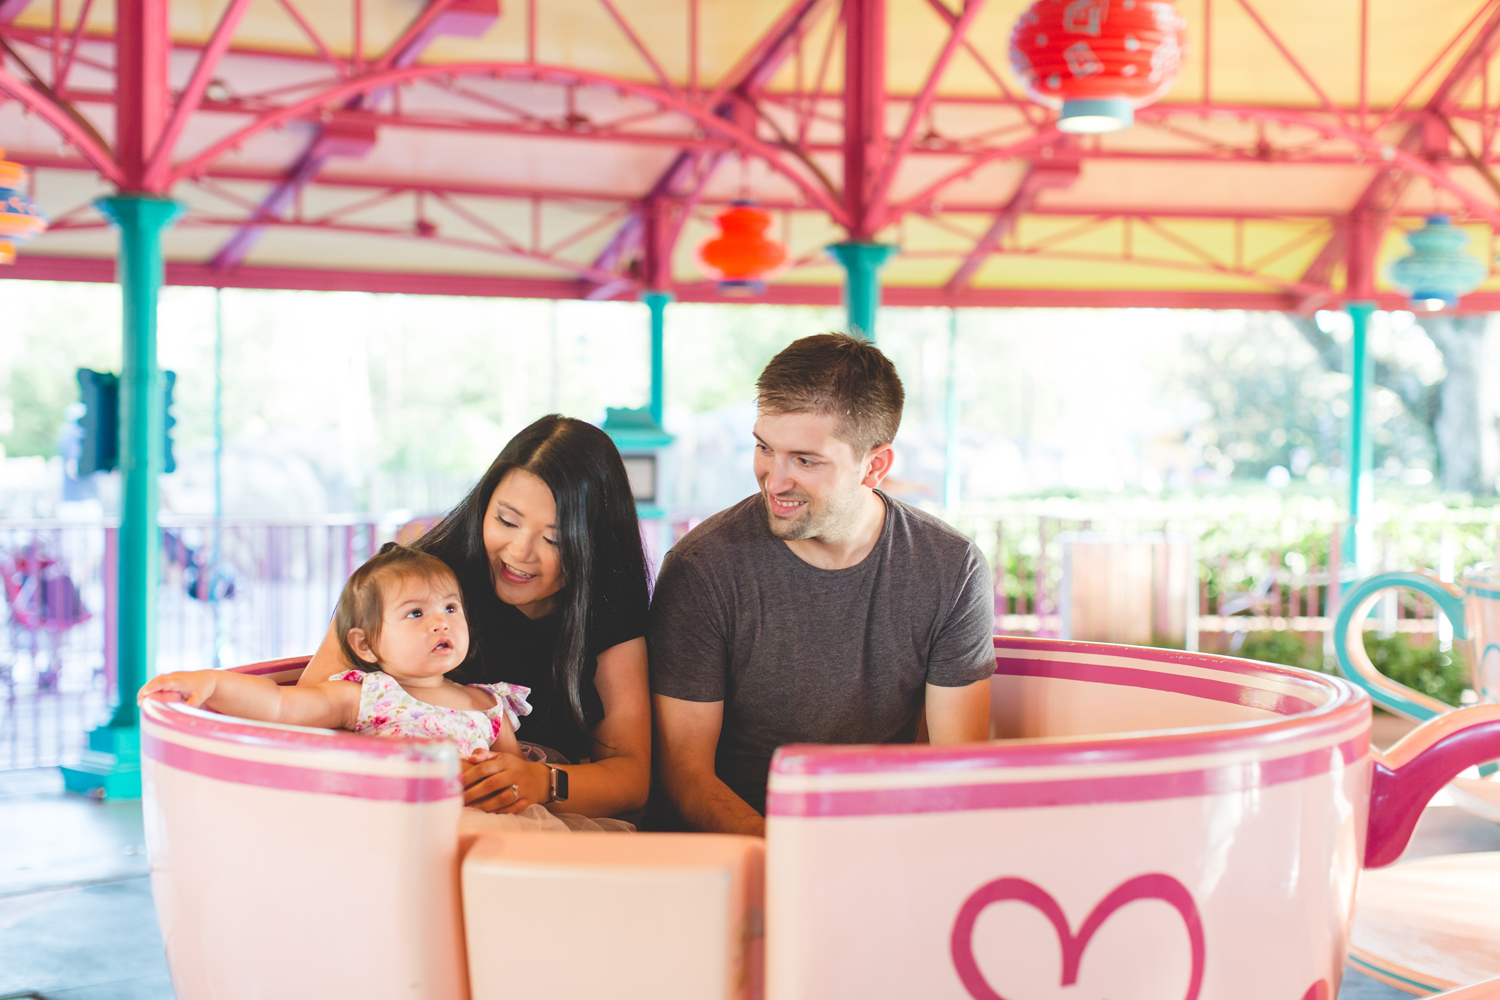 Jaime DiOrio - Disney Family Session - Orlando Family Photographer - Magic Kingdom Family Session - Documentary Photographer (30).jpg